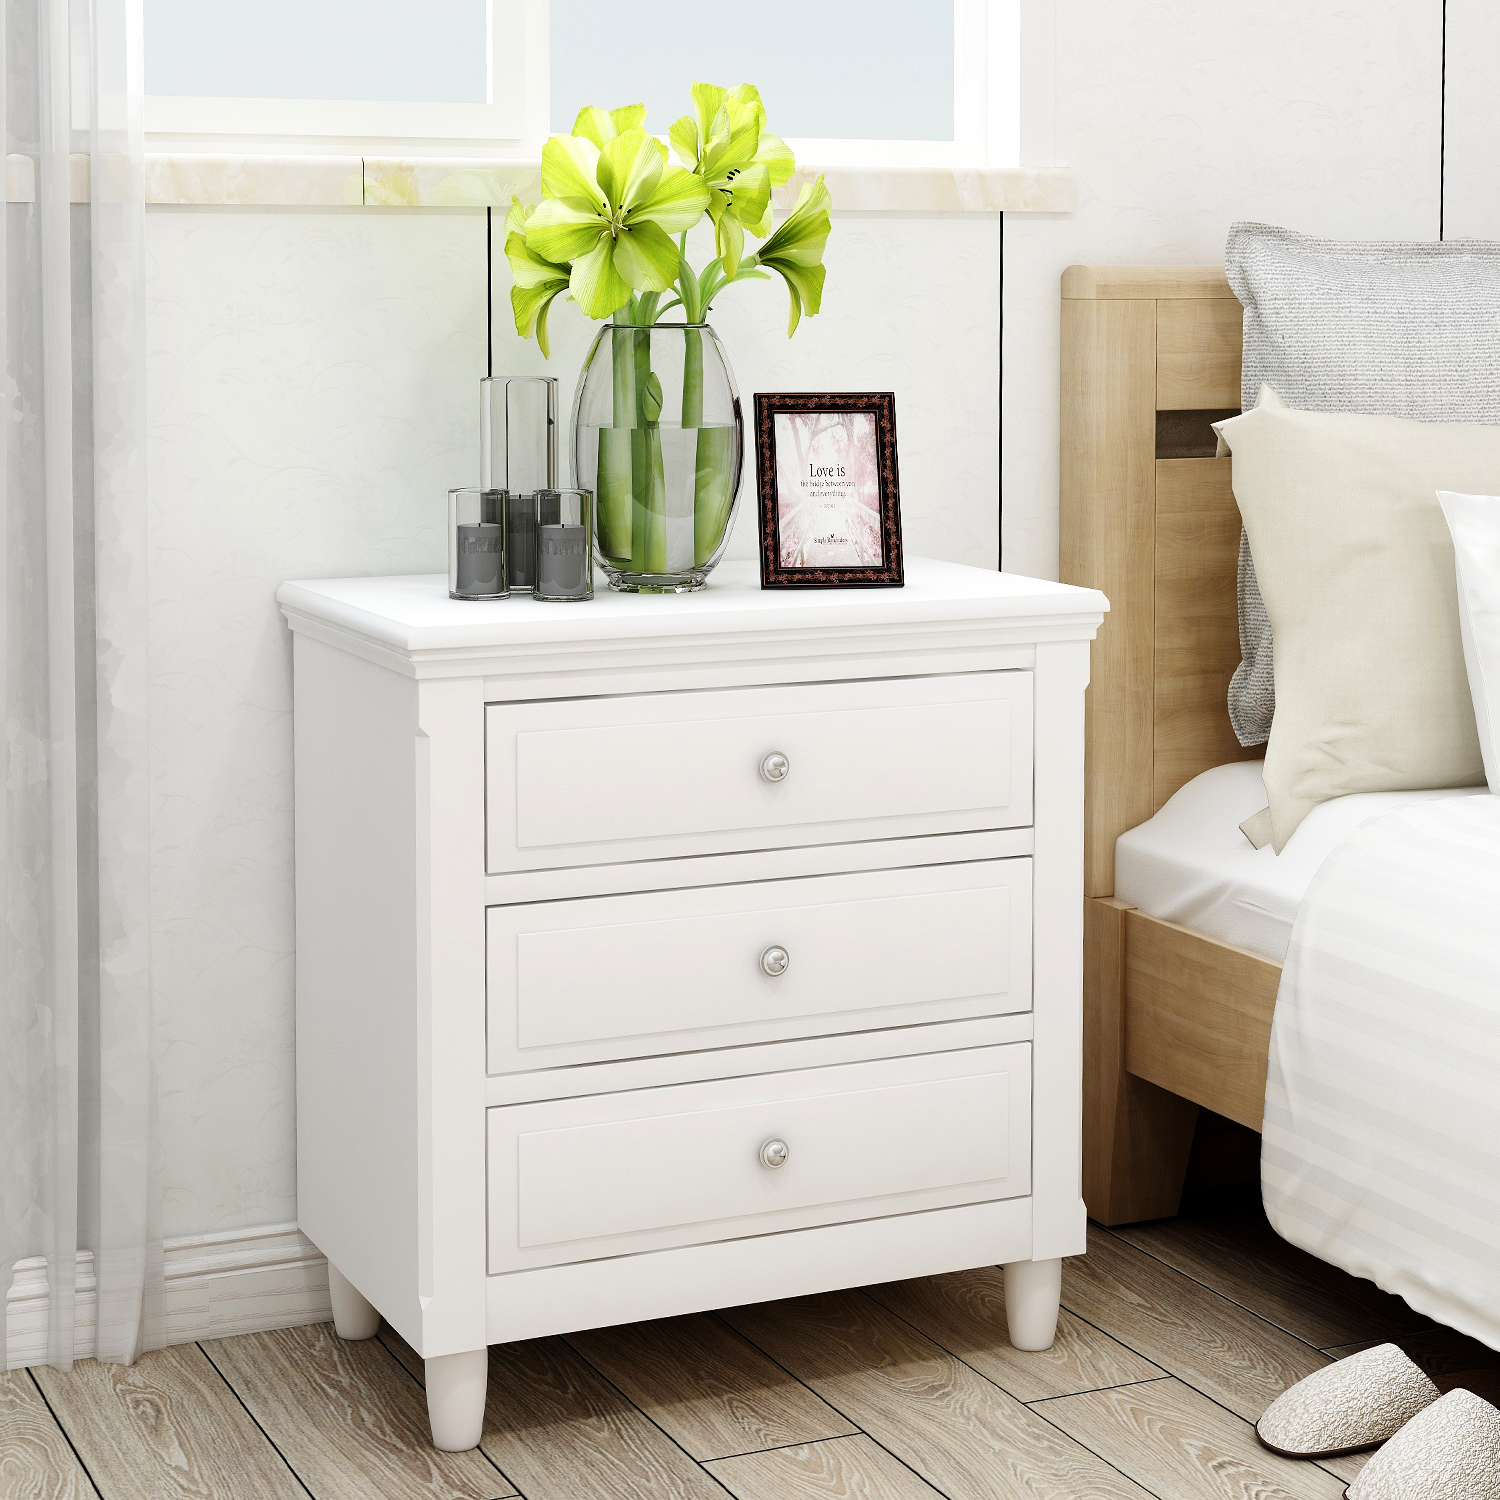 Image of: Endside Table With Three Drawers Wooden Bedroom Nightstand Classic Contemporary Style File Cabinet Storage Decoration Bedside Table For Bedroom Living Room 28 H X 28 W X 17 D White Y0294